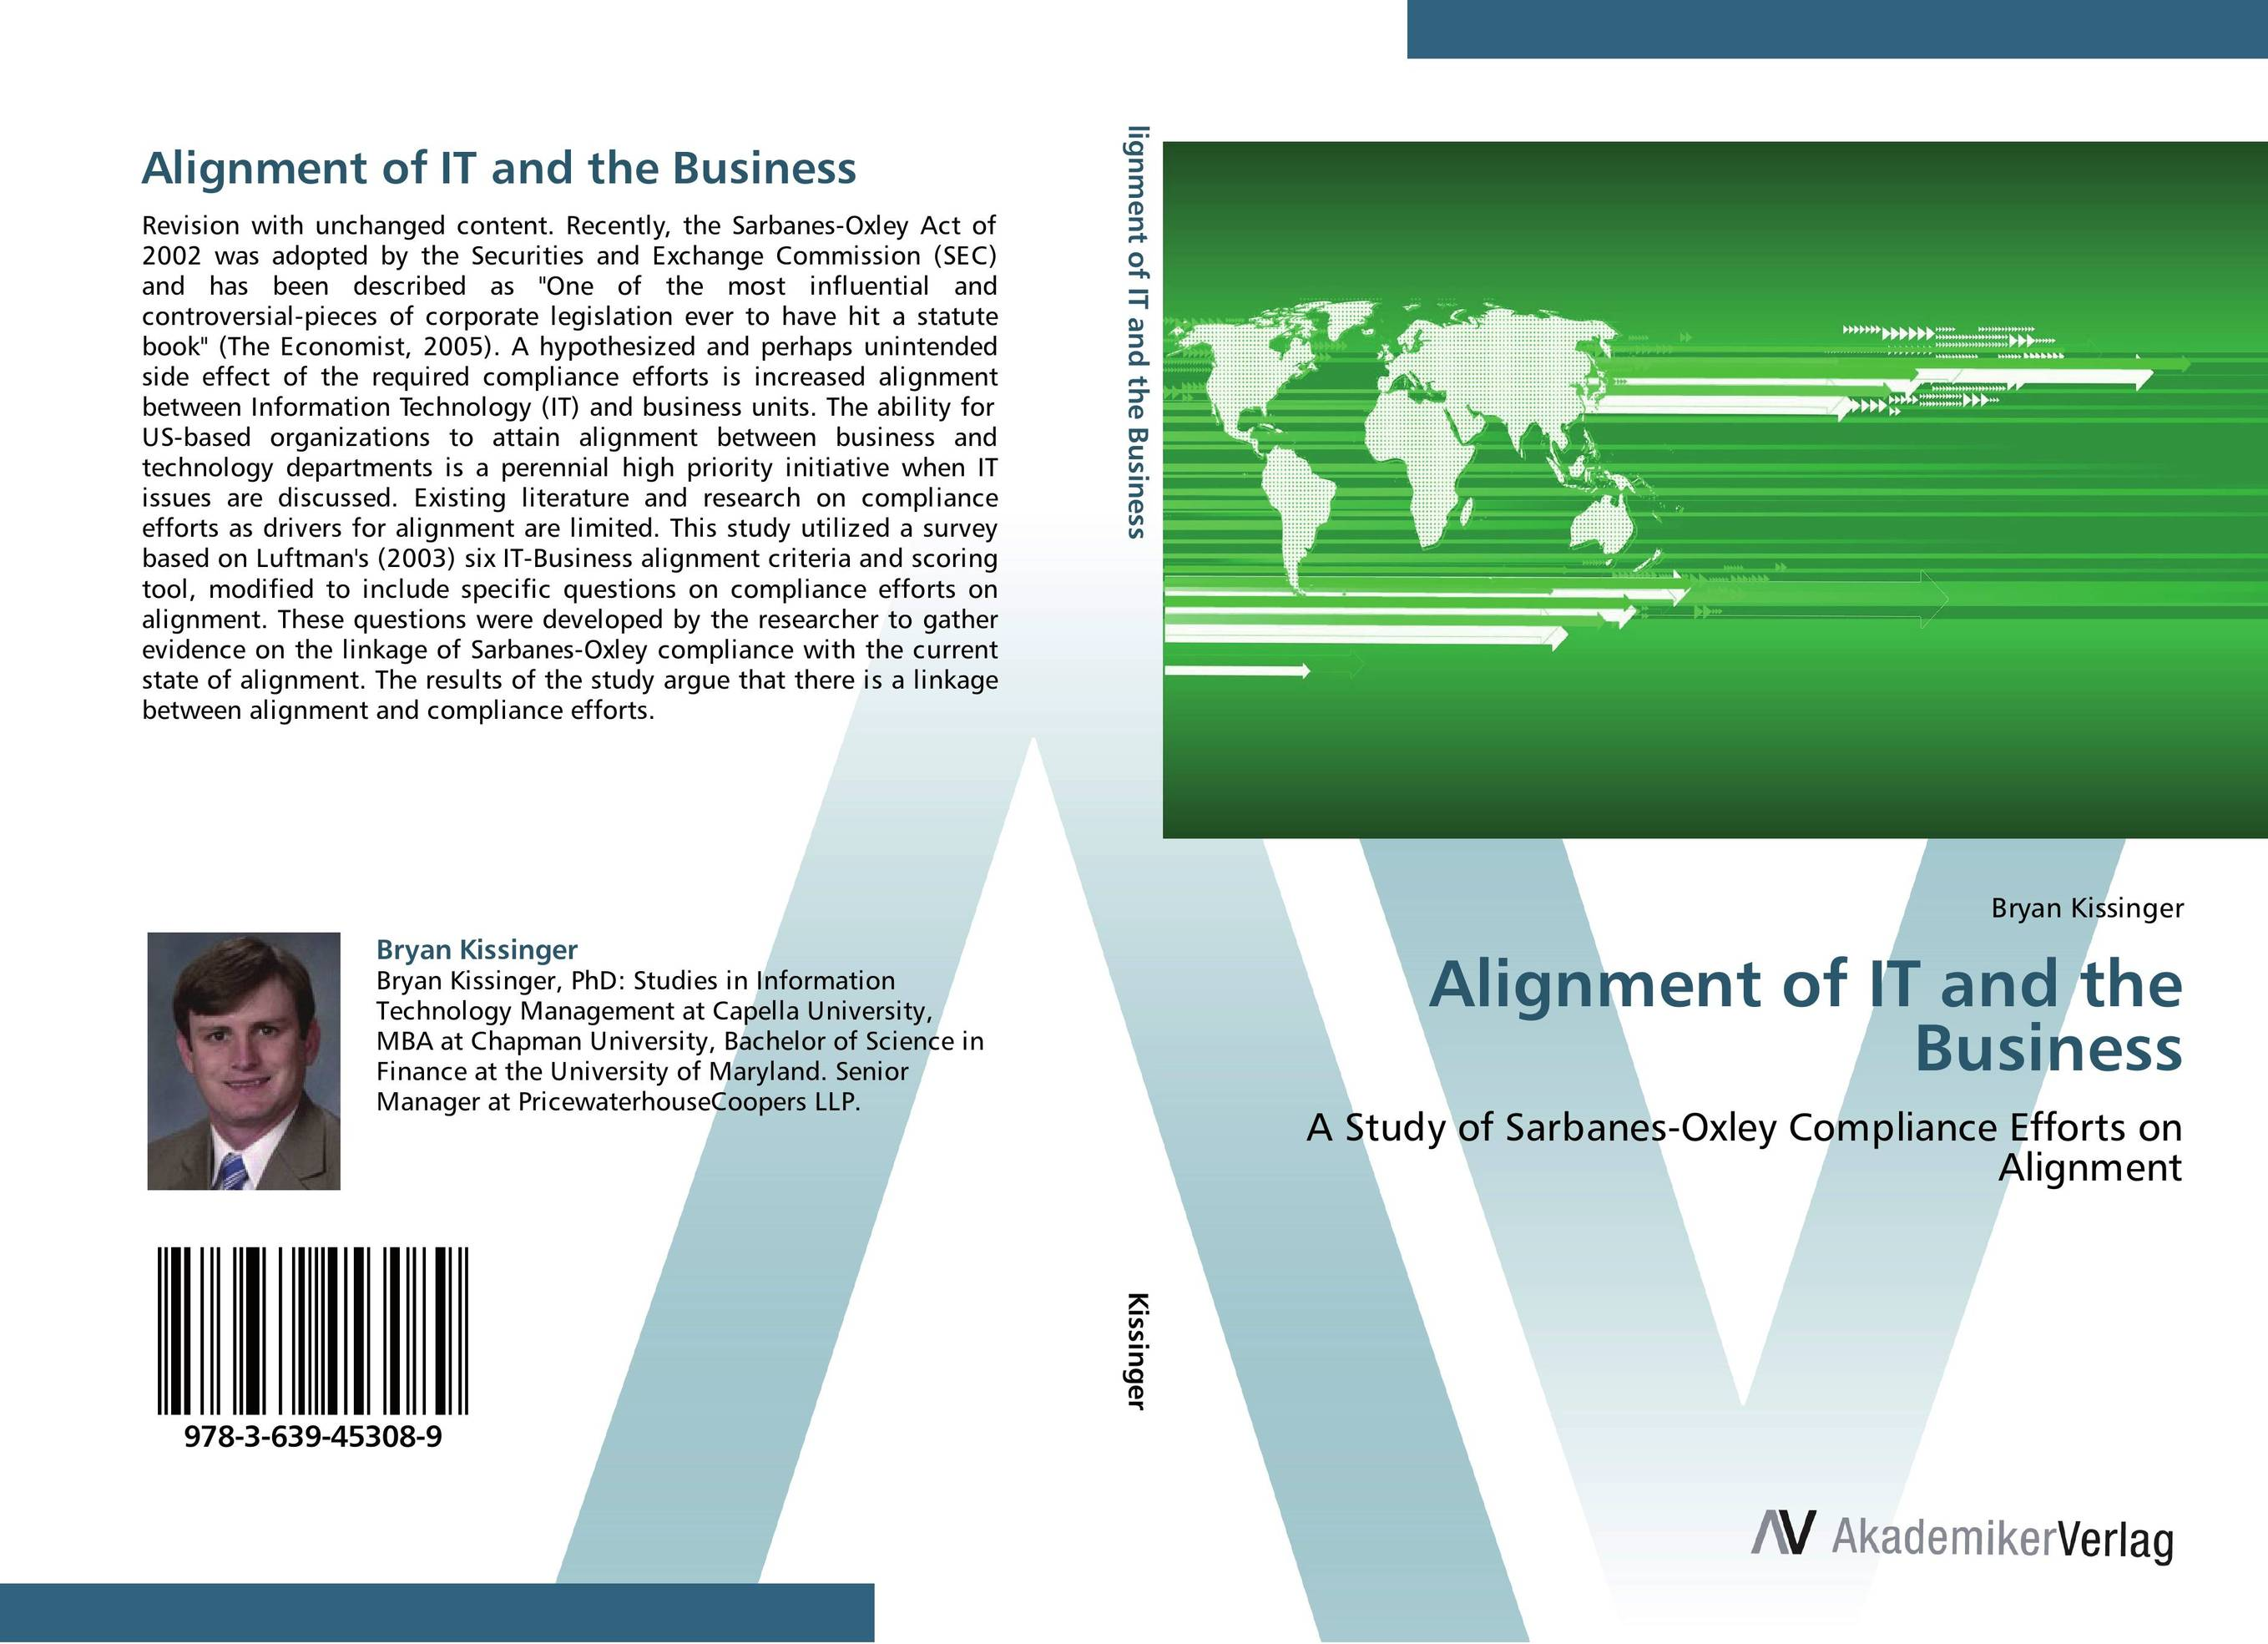 Alignment of IT and the Business rakesh kumar khandal and sapana kaushik coal tar pitch with reduced pahs and thermosets based on it